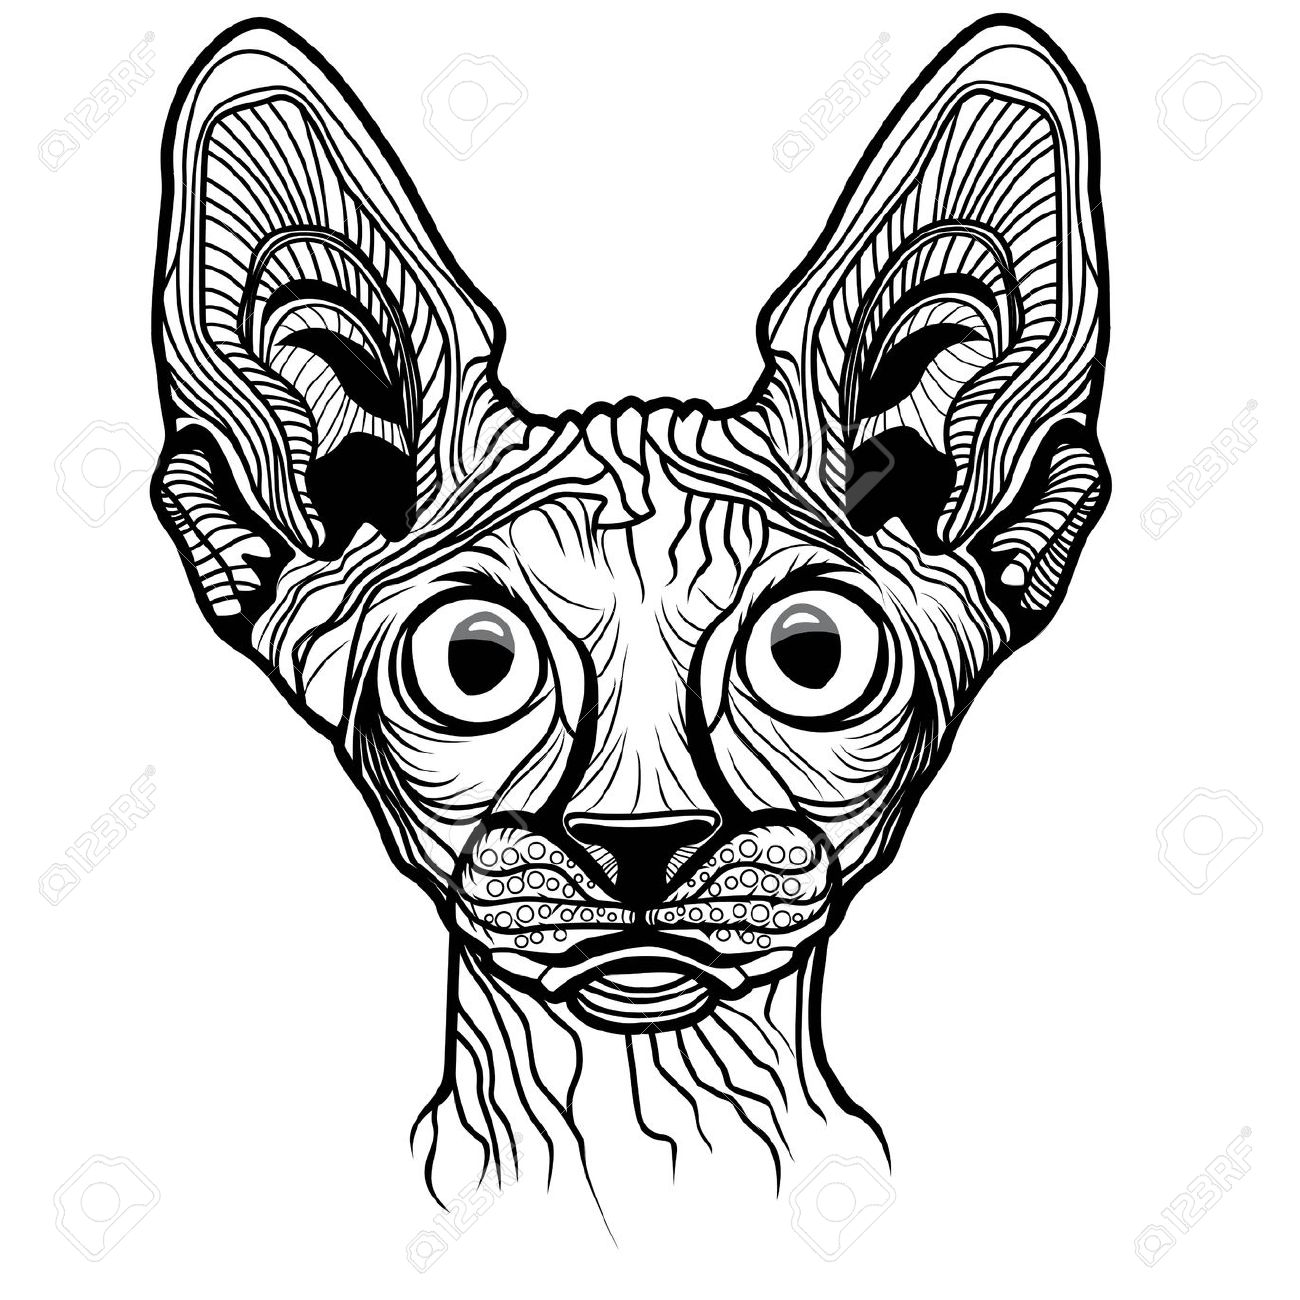 Sphynx clipart #5, Download drawings